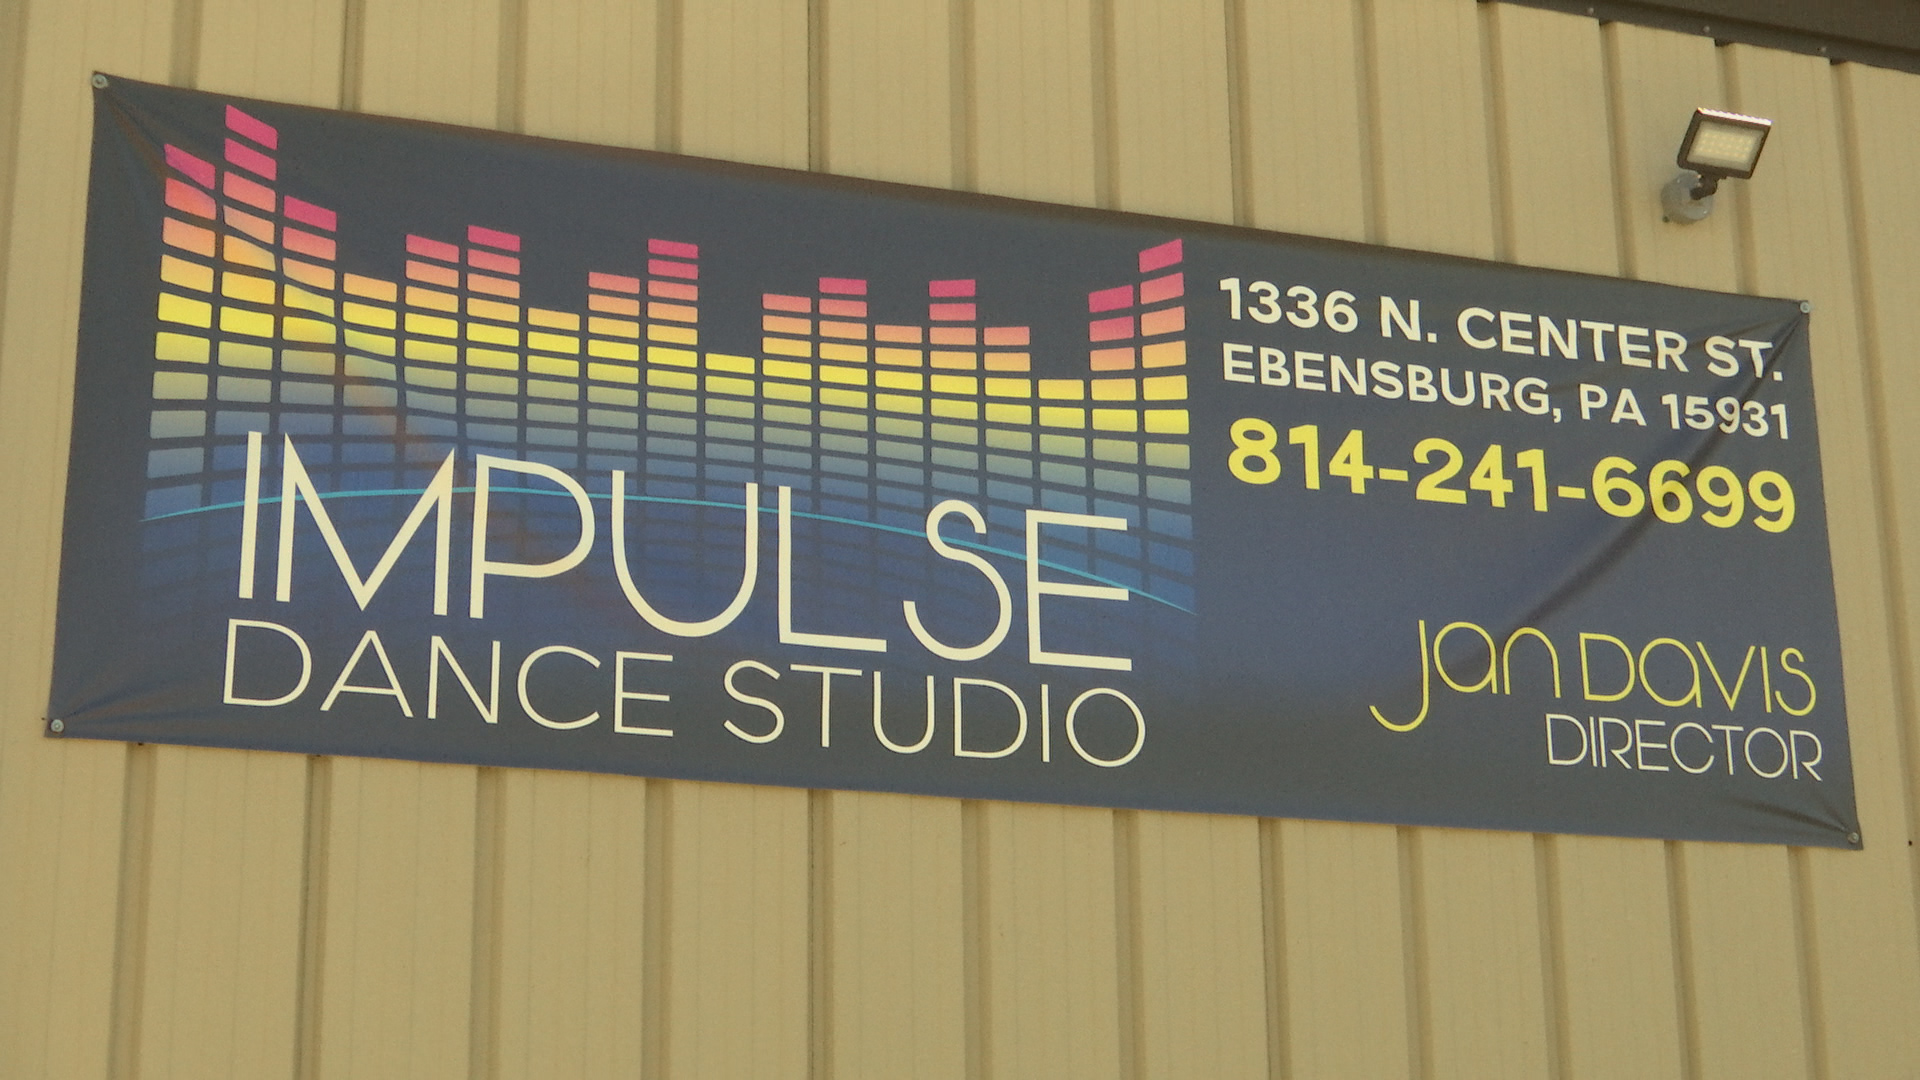 New Dance Studio Opens In Ebensburg